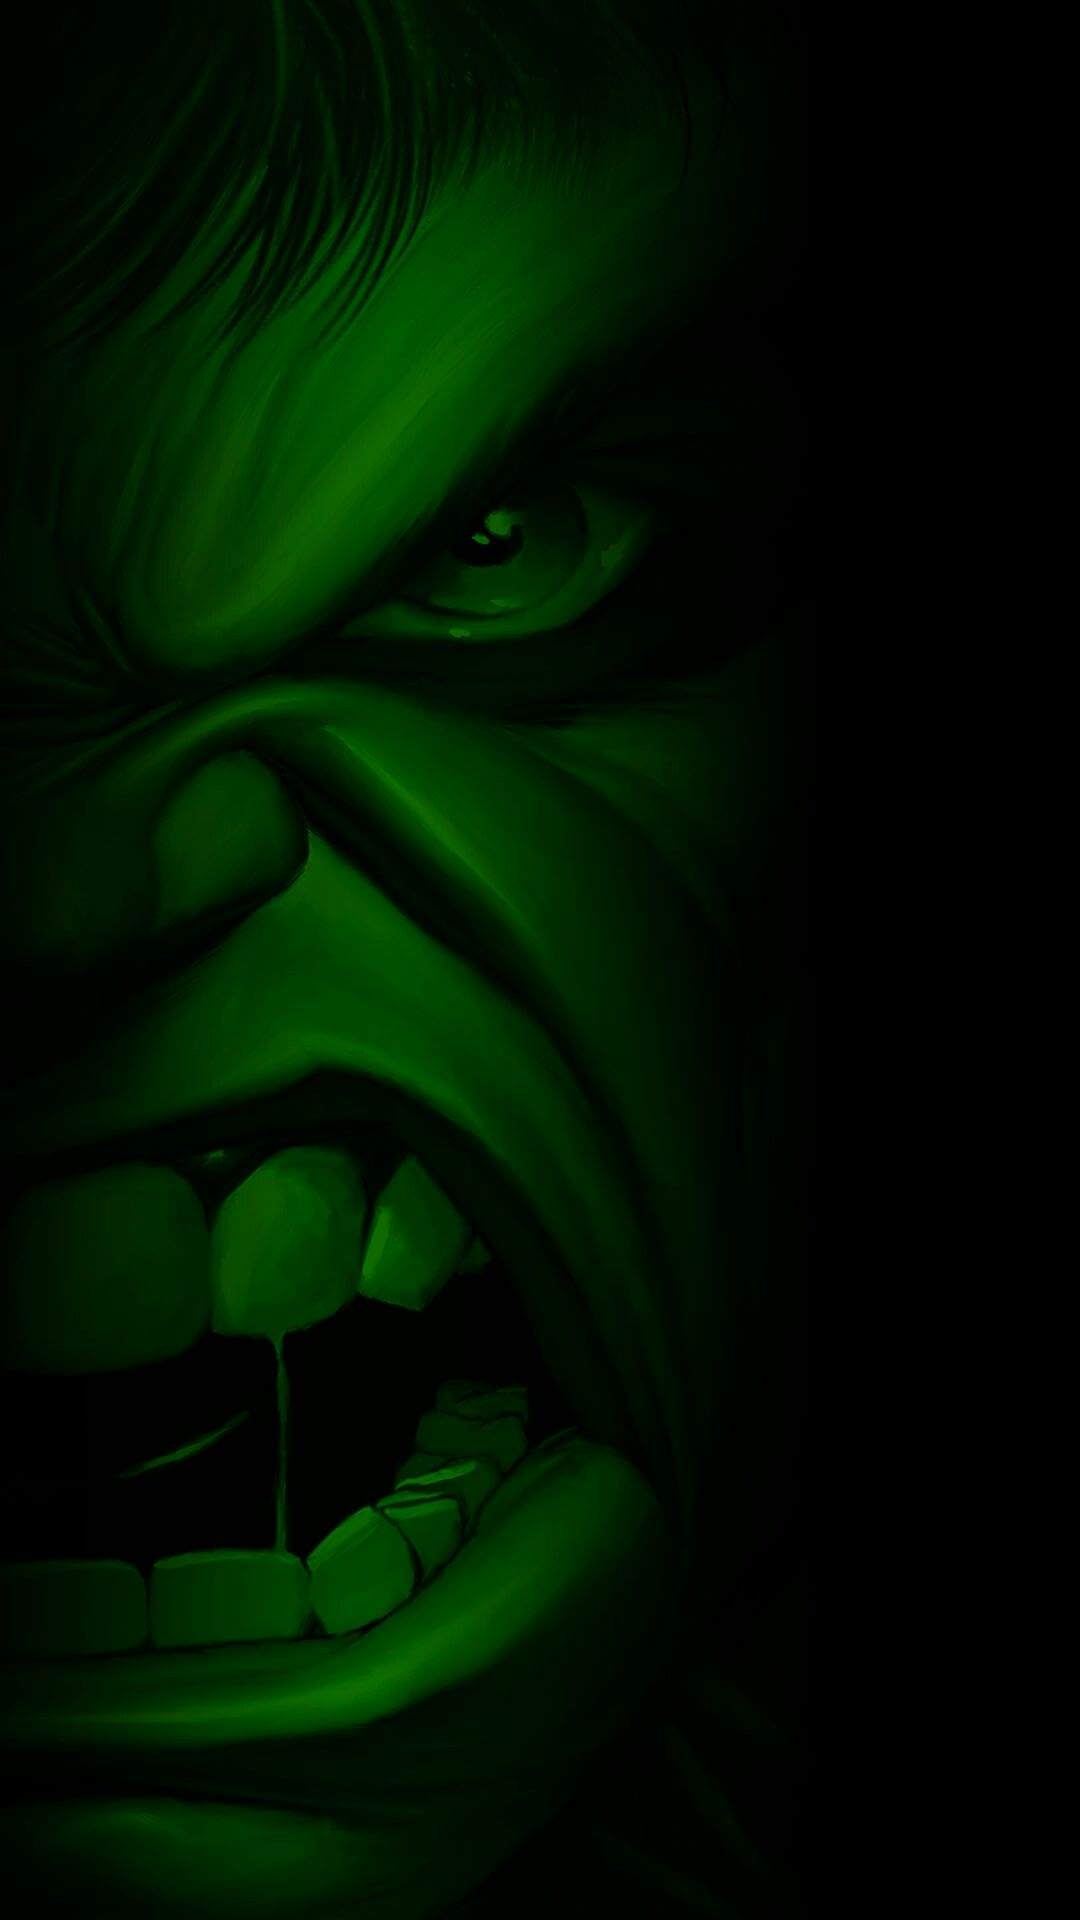 The Hulk Hulk Marvel Hulk Artwork Hulk Art